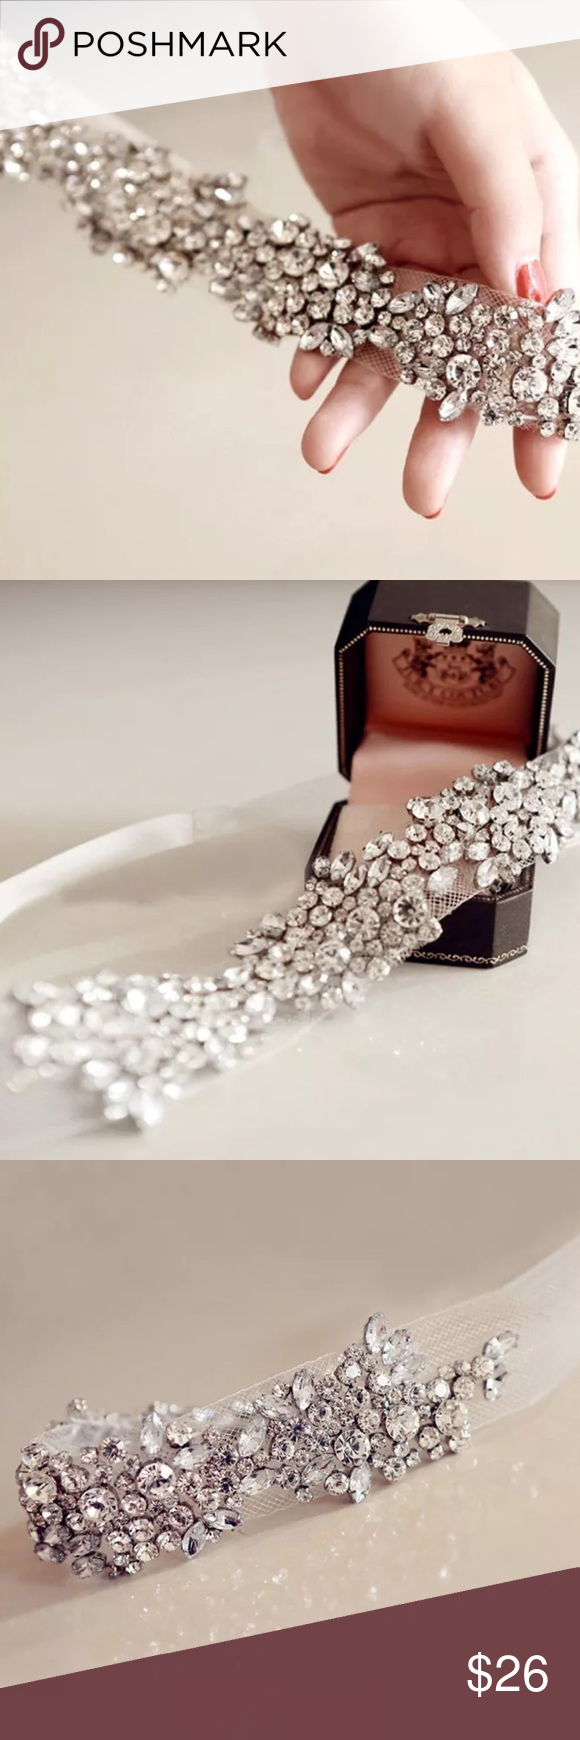 """Stunning Crystal on Tulle Tie Headband This piece is breathtaking. I found it for my friends wedding for a boho chic look - just before the ceremony she asked if she could wear it as her """"something borrowed"""". Purchased another to keep and two more for Posh. Grab this.... New in gift pouch. Accessories Hair Accessories"""